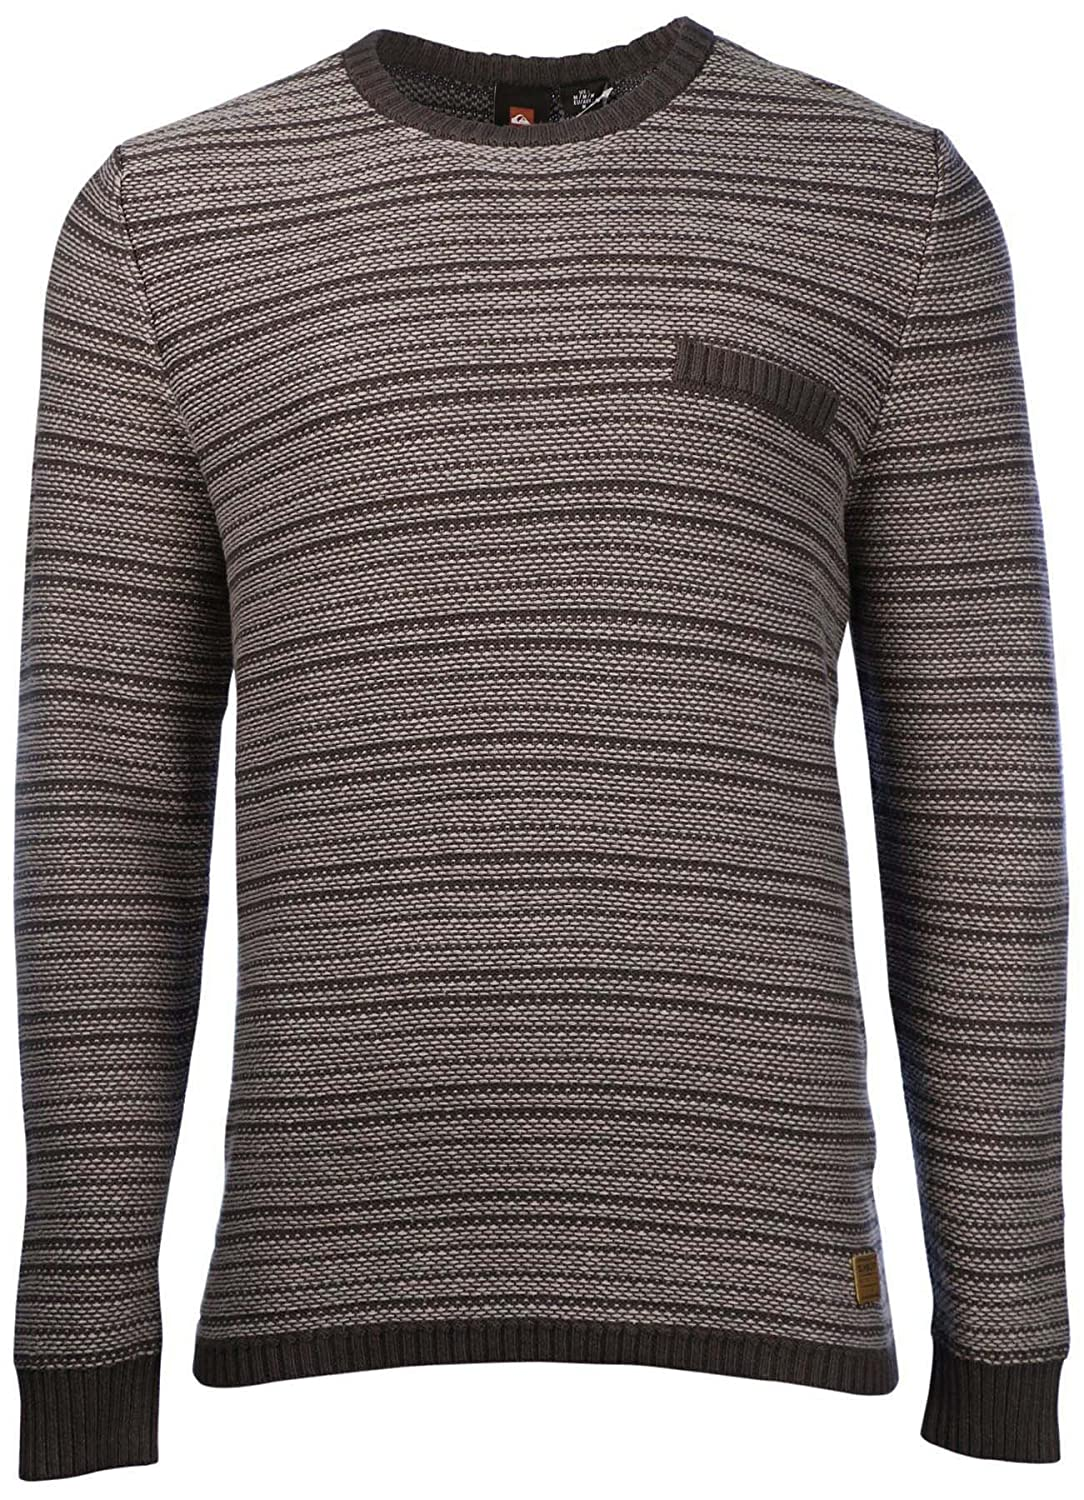 Quiksilver Mens Buswick Pullover Sweater AQYSW03007